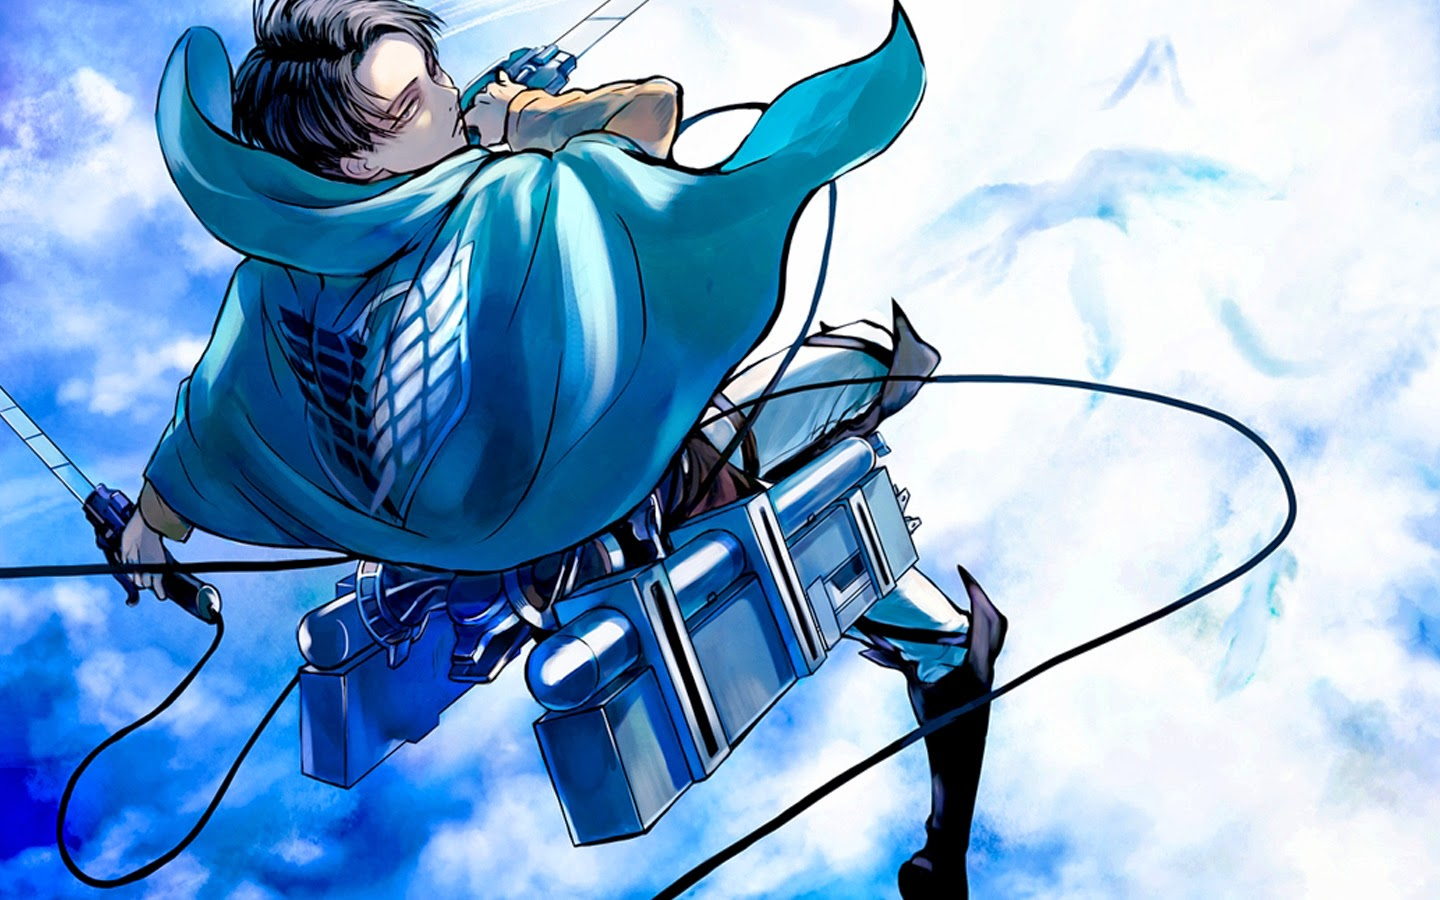 titans red shingeki no - photo #30